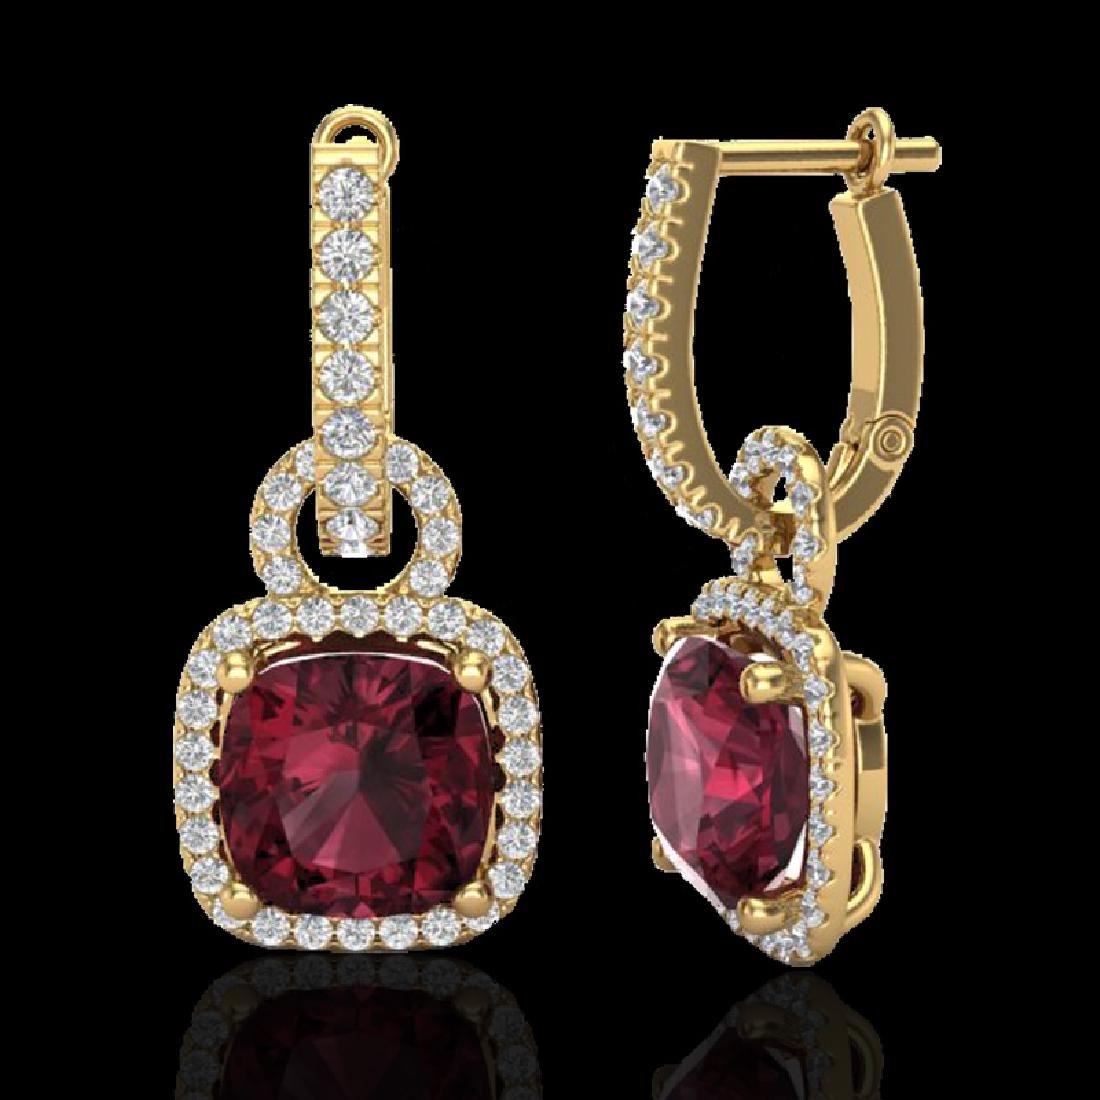 7 CTW Garnet & Micro Pave VS/SI Diamond Earrings 18K - 2